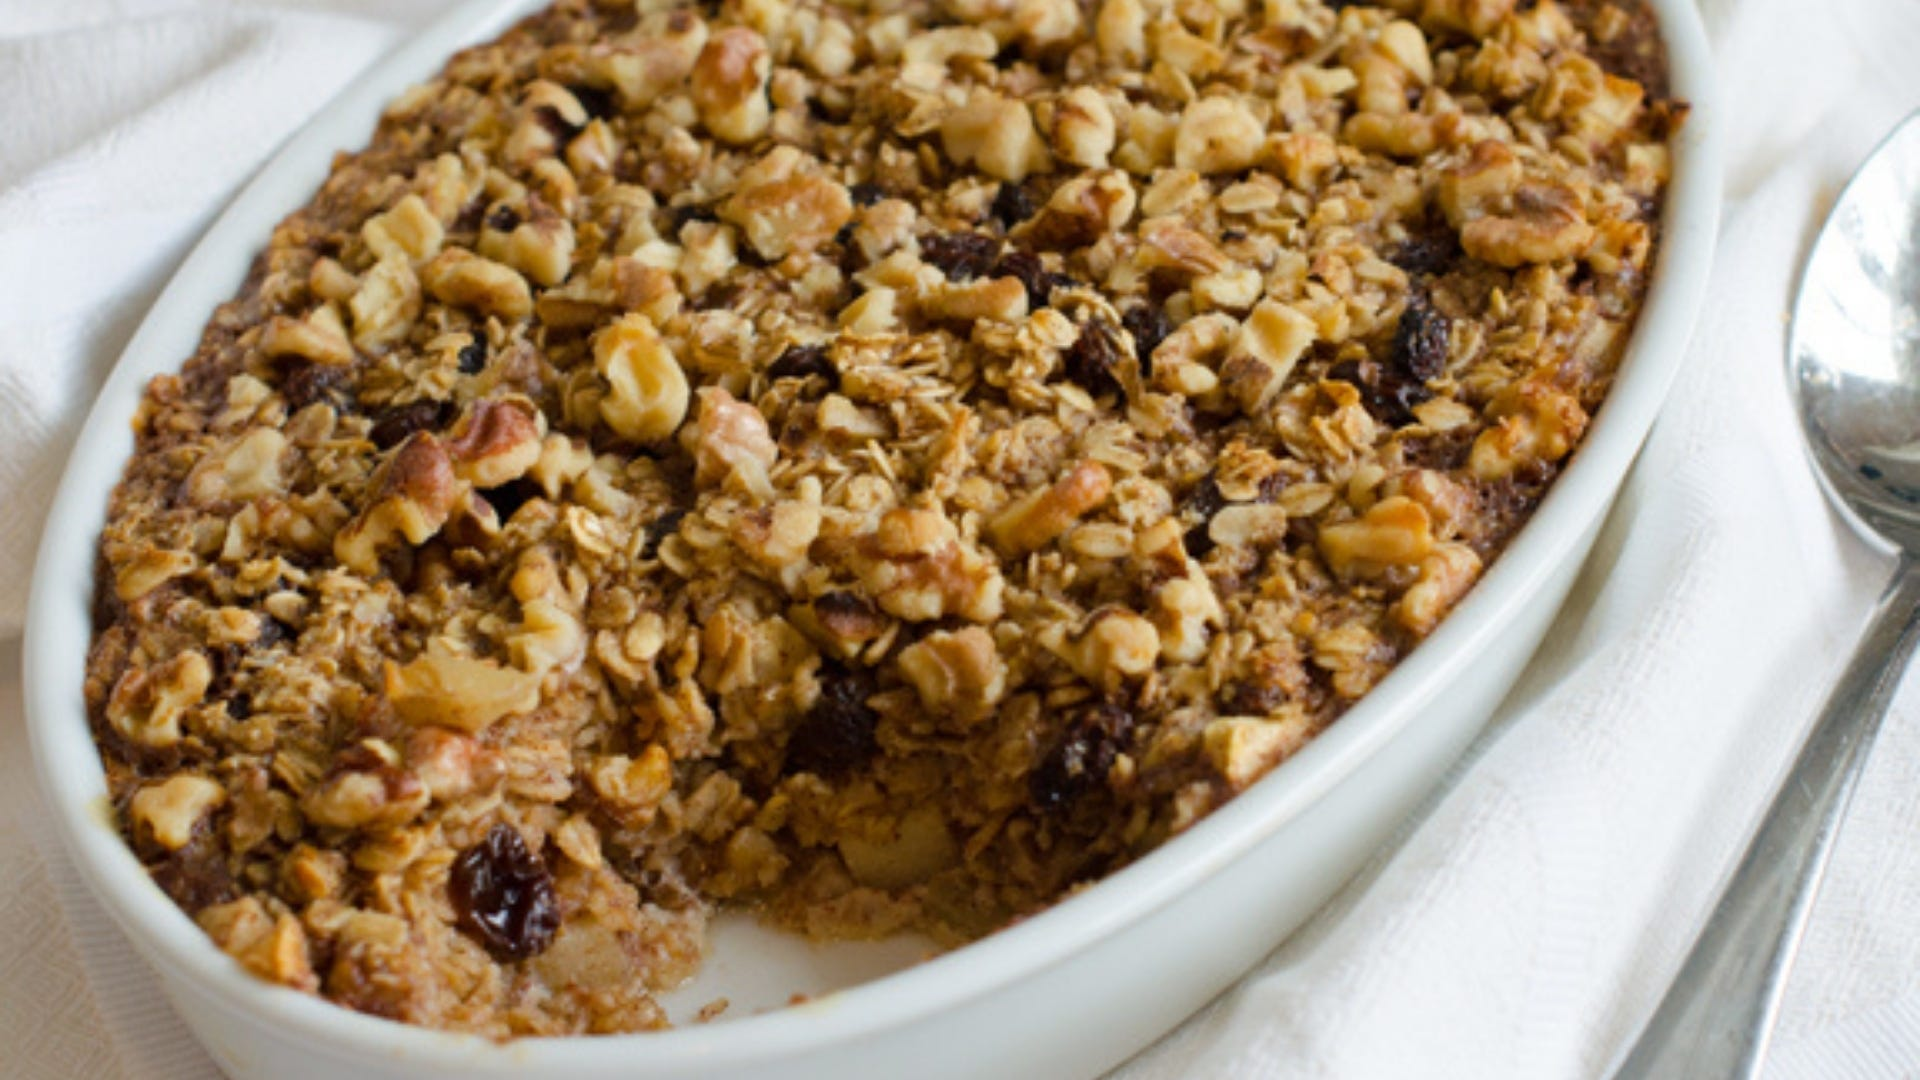 Casserole dish with baked oatmeal inside